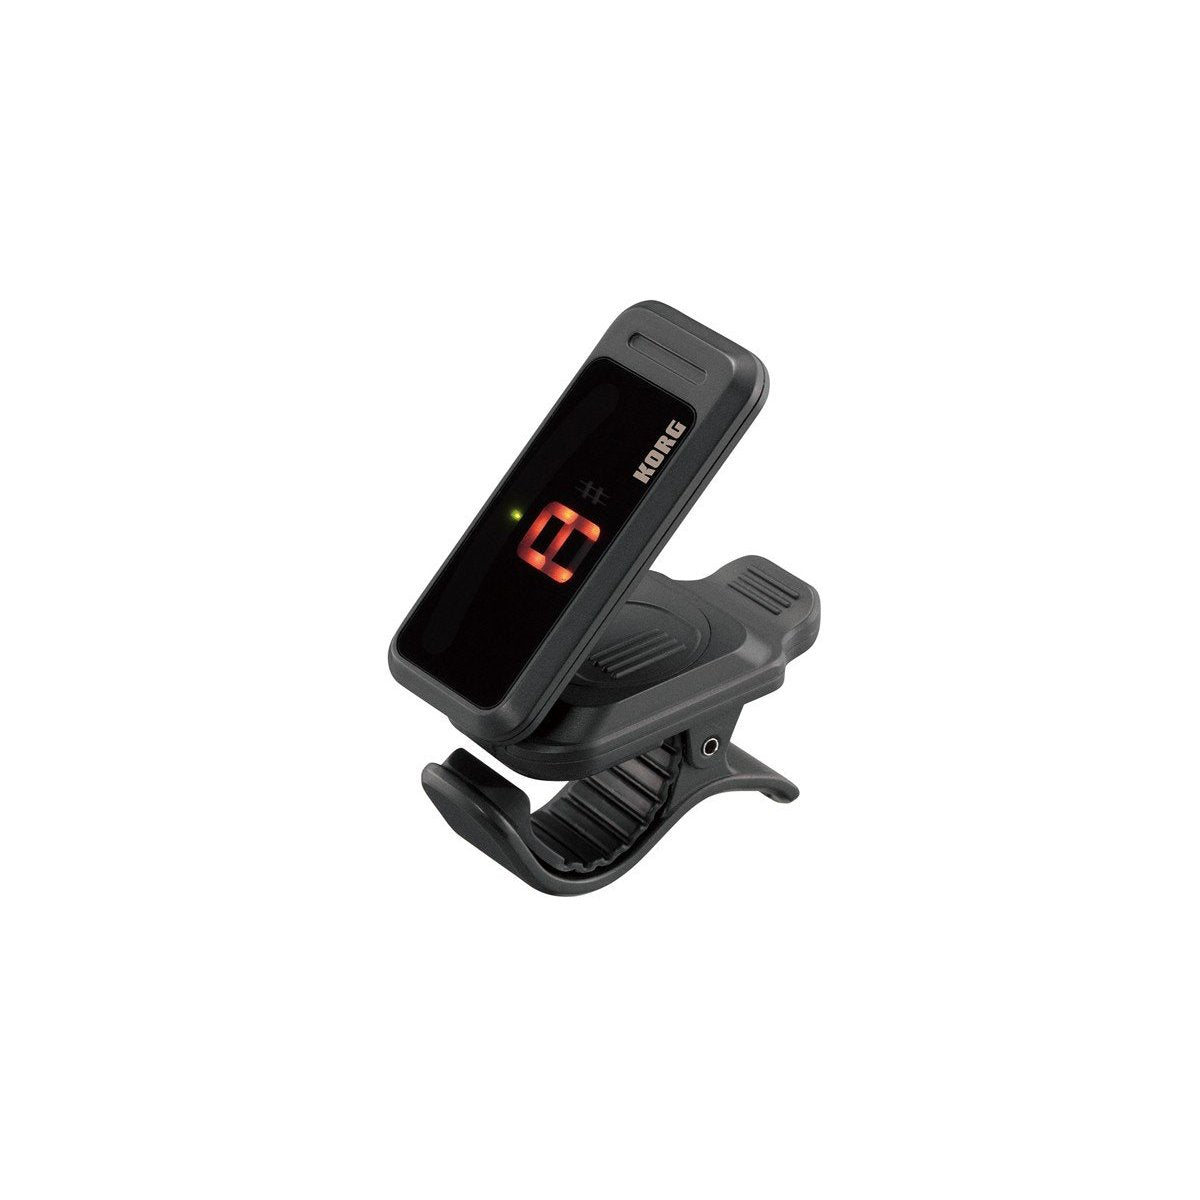 Korg - PC-1 Pitchclip Clip-on Chromatic Guitar Tuner-Tuner & Metronome-Korg-Music Elements